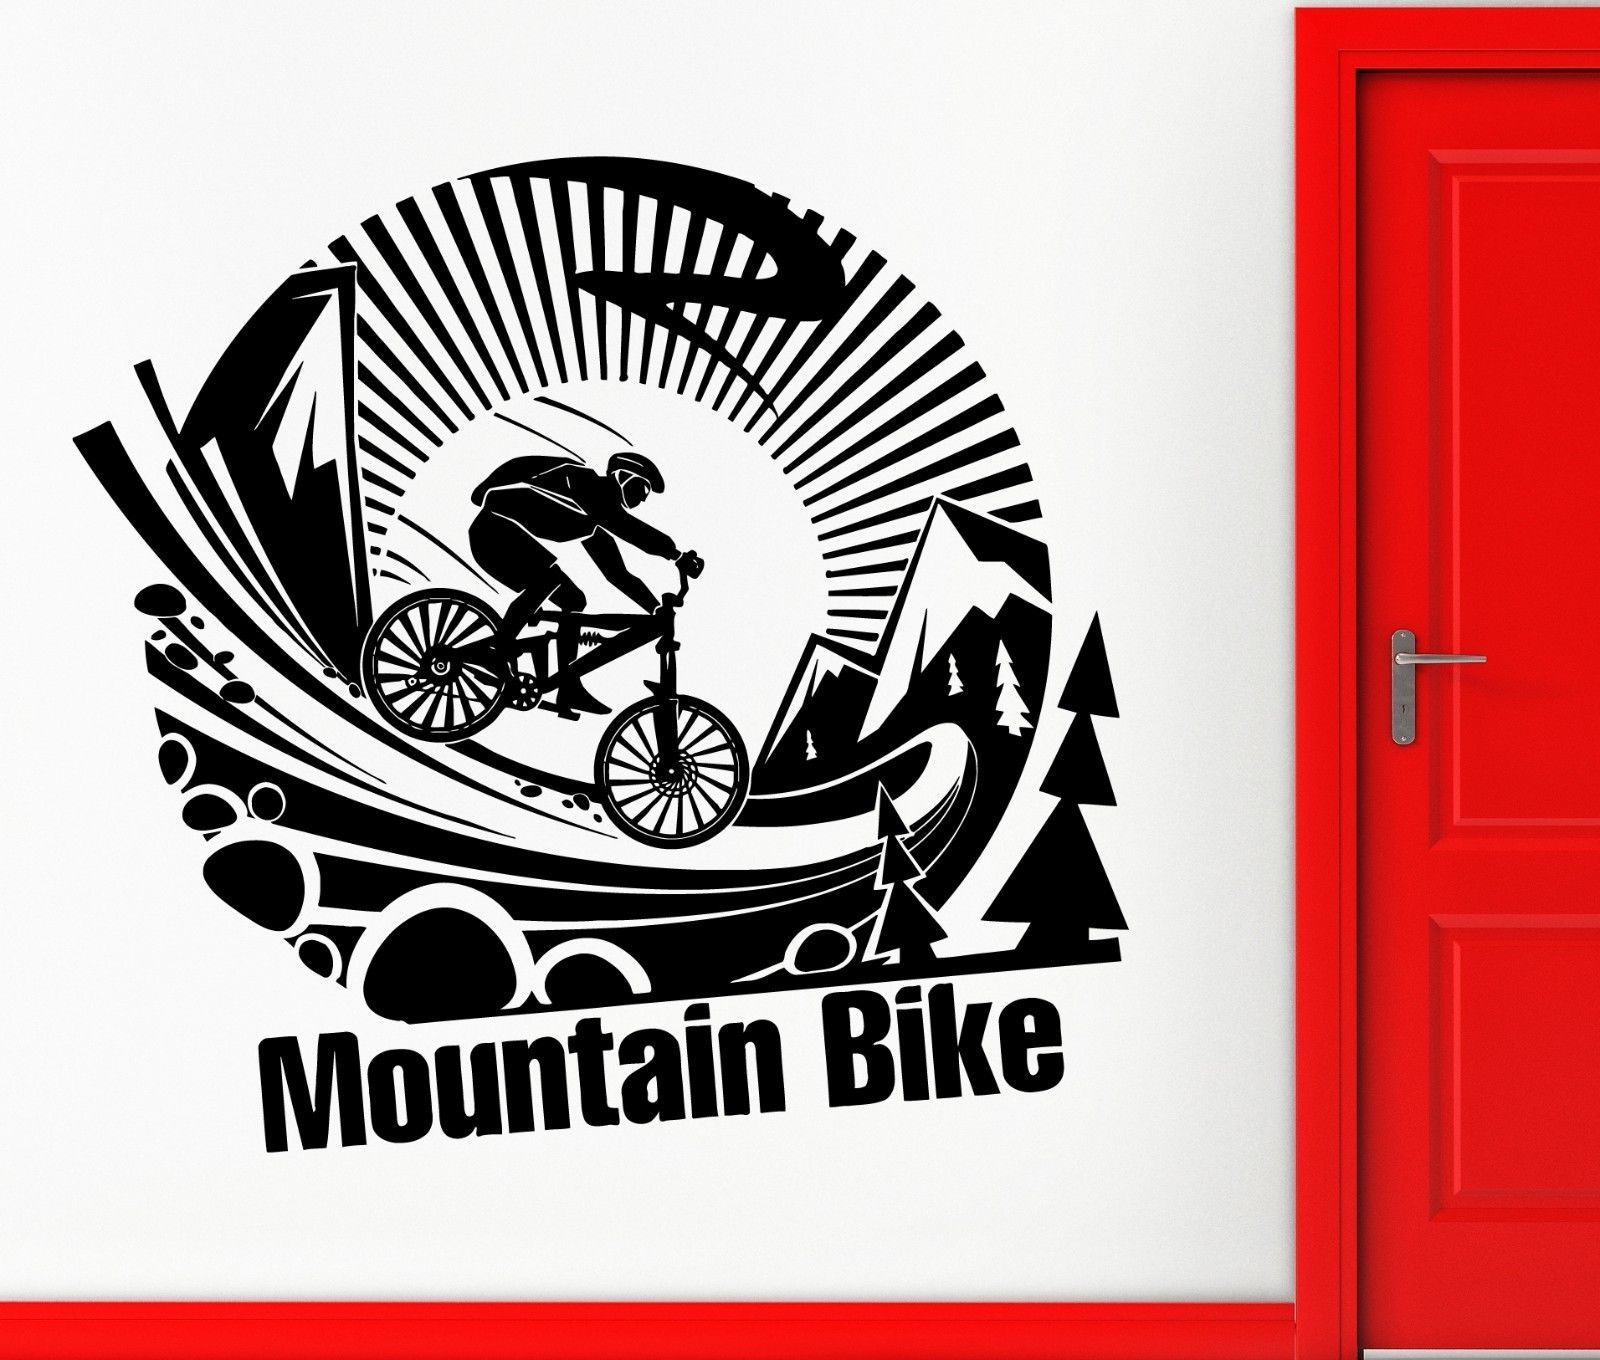 Vinyl decal mountain bike extreme sports cool room decor for Stickers para pared